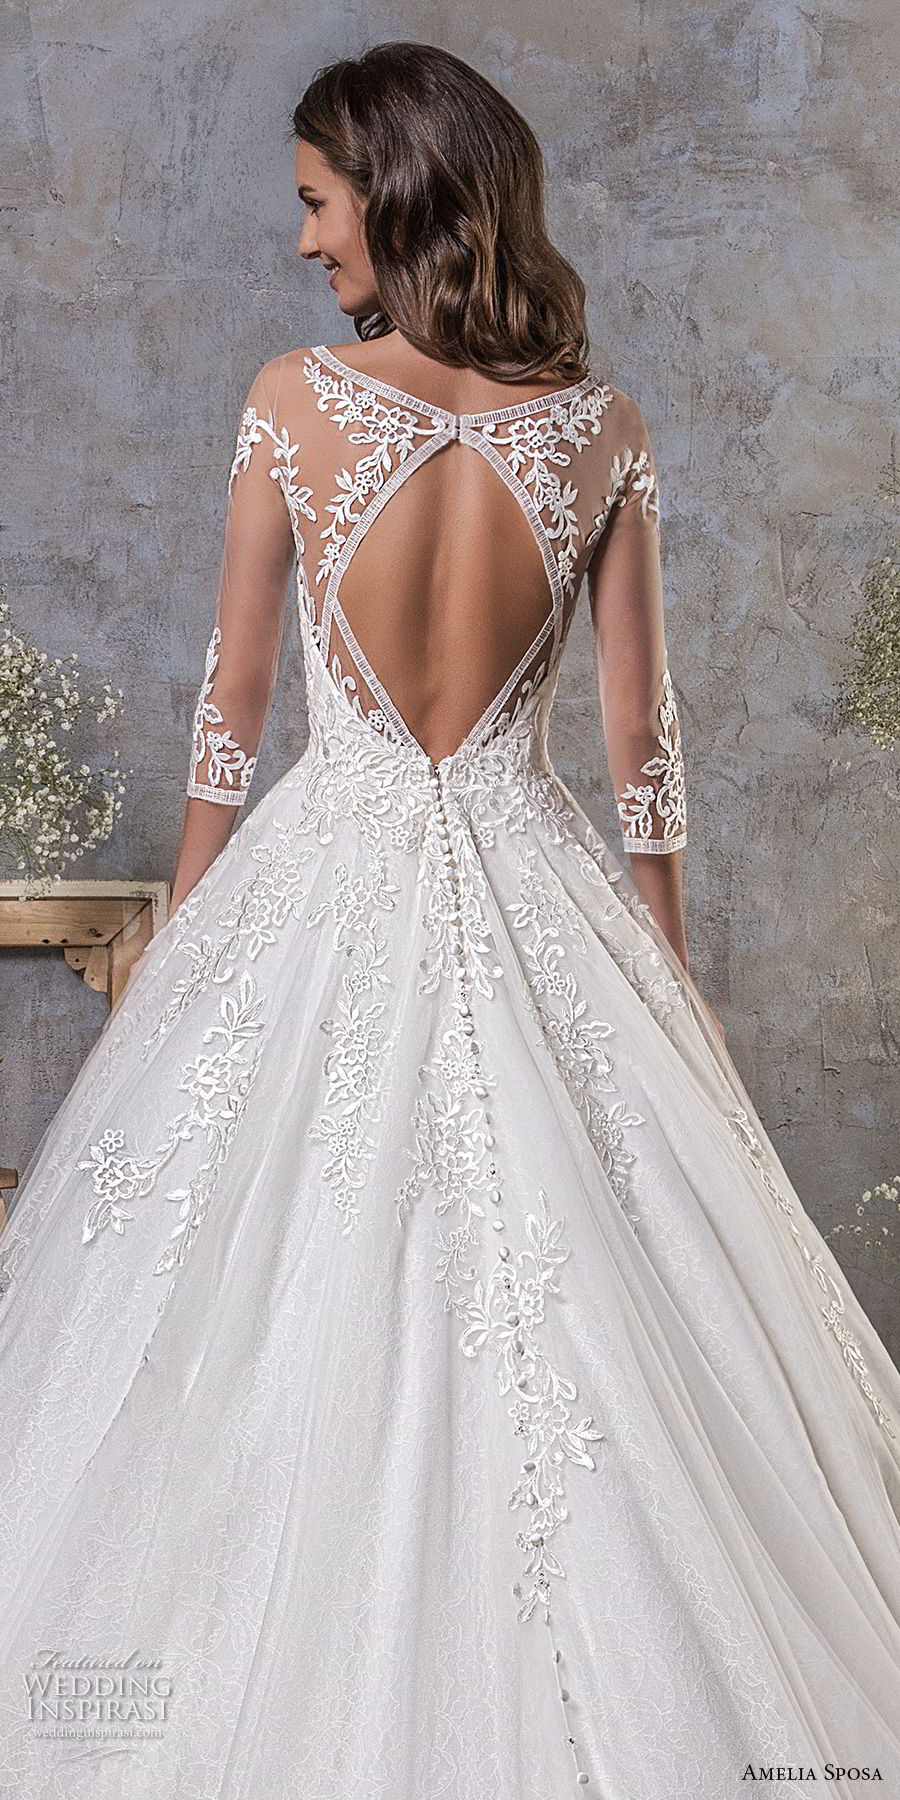 amelia sposa fall 2018 bridal three quarter sleeves illusion bateau semi sweetheart neckline heavily embellished bodice romantic a line wedding dress keyhole back chapel train (11) bv